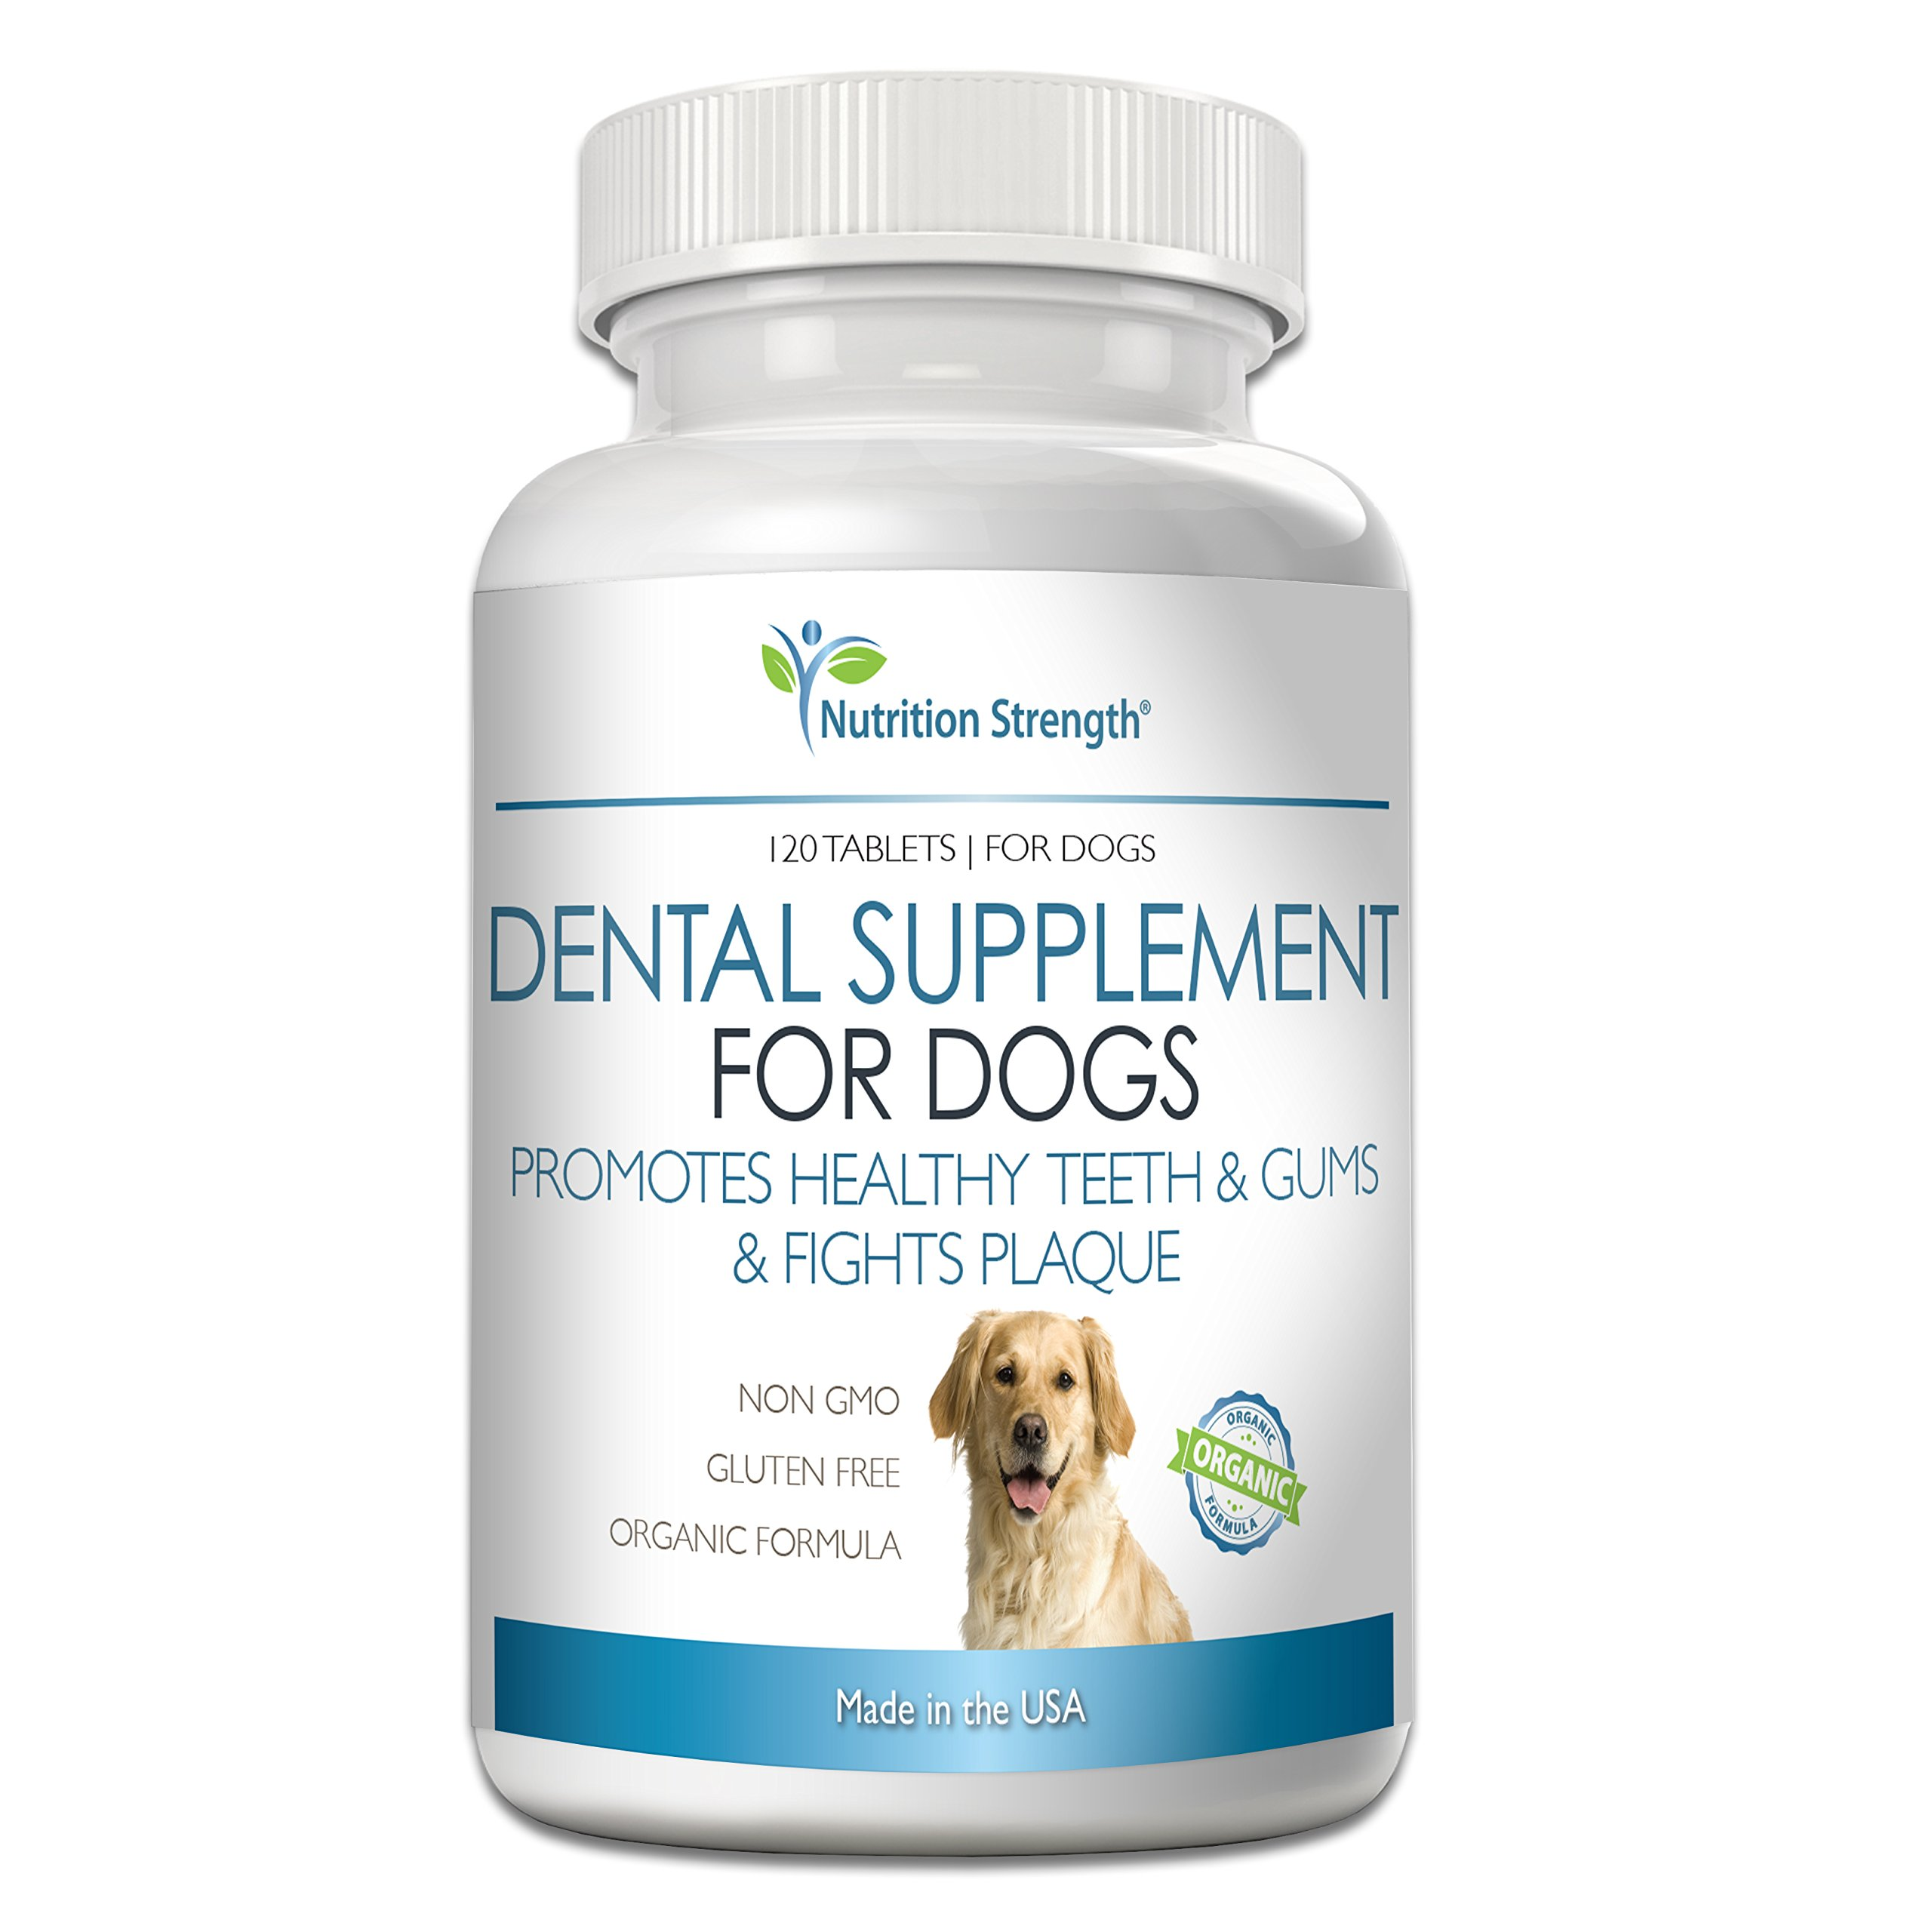 Nutrition Strength Dental Care for Dogs, Daily Supplement for Healthy Dog Gums and Teeth with All-Organic Ingredients, 120 Chewable Tablets